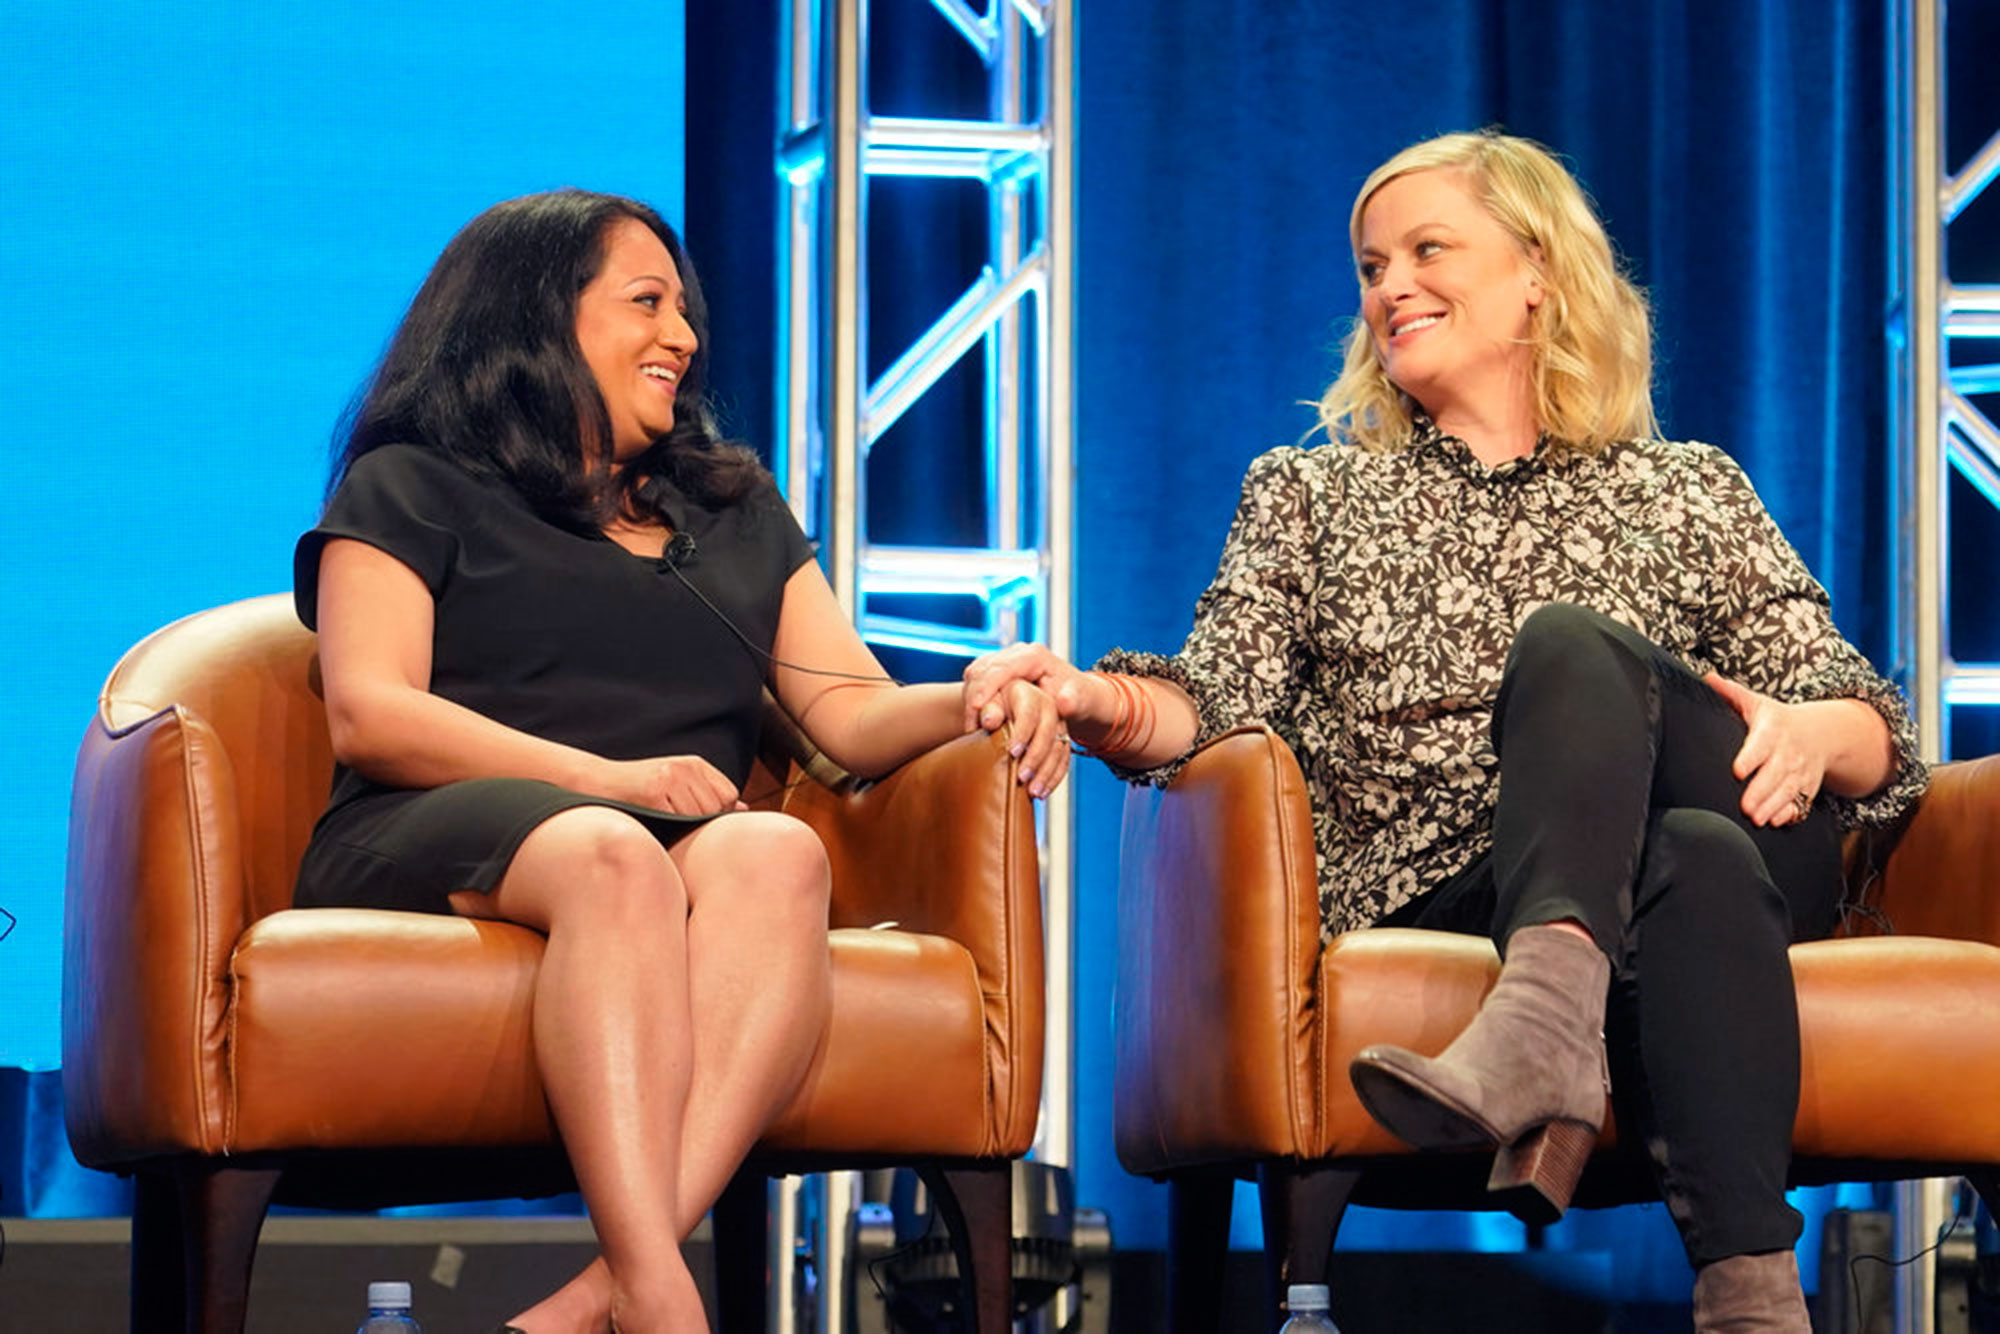 """Aseem Batra Amy Poehler - NBCUniversal Press Tour, August 2018 — NBC's """"I Feel Bad"""" Panel — Pictured: (l-r) Aseem Batra, Executive Producer; Amy Poehler, Executive Producer"""